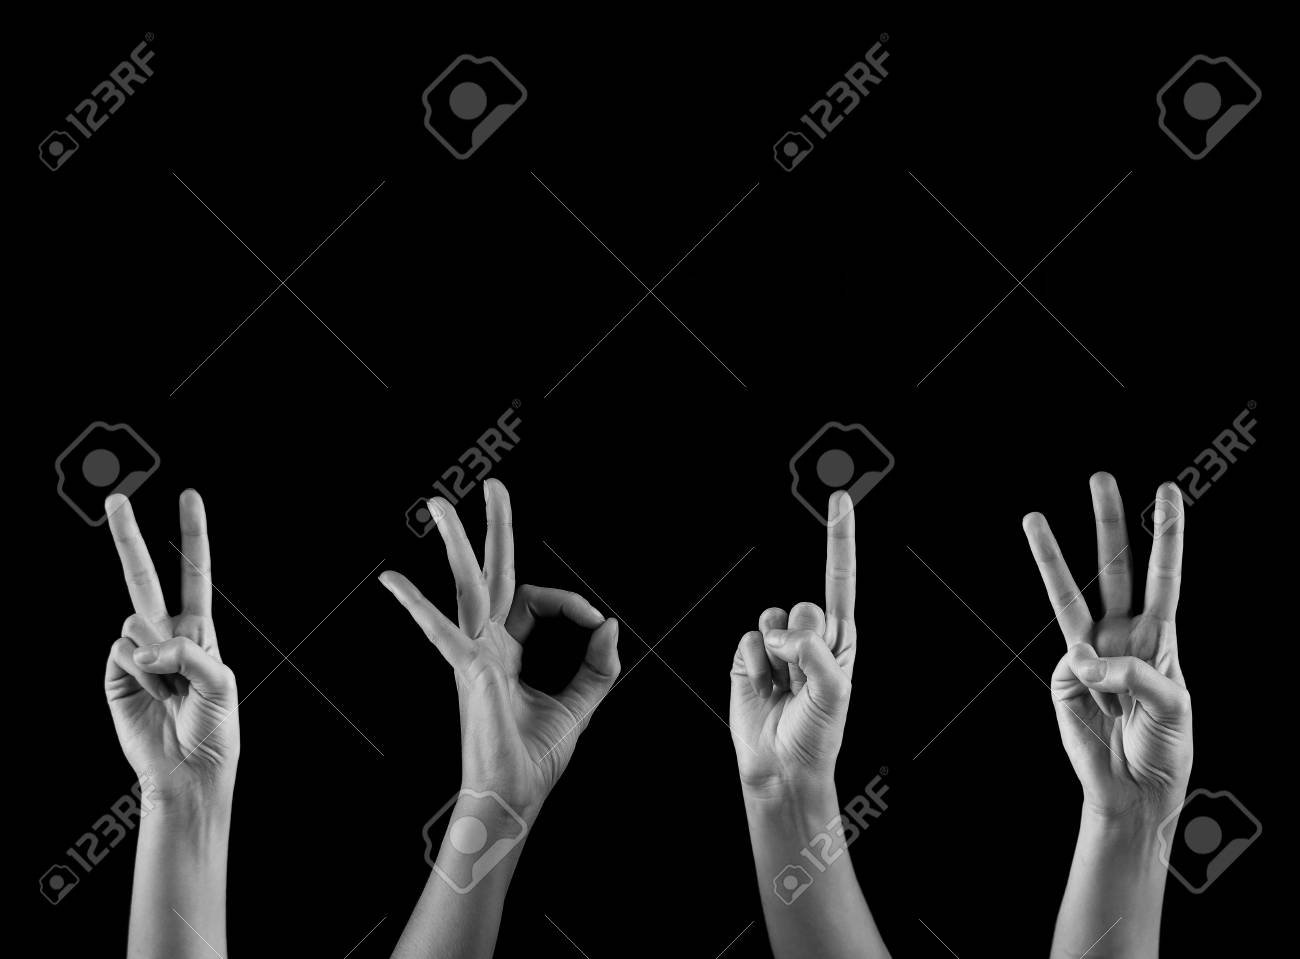 hands forming number 2013 Stock Photo - 16244972